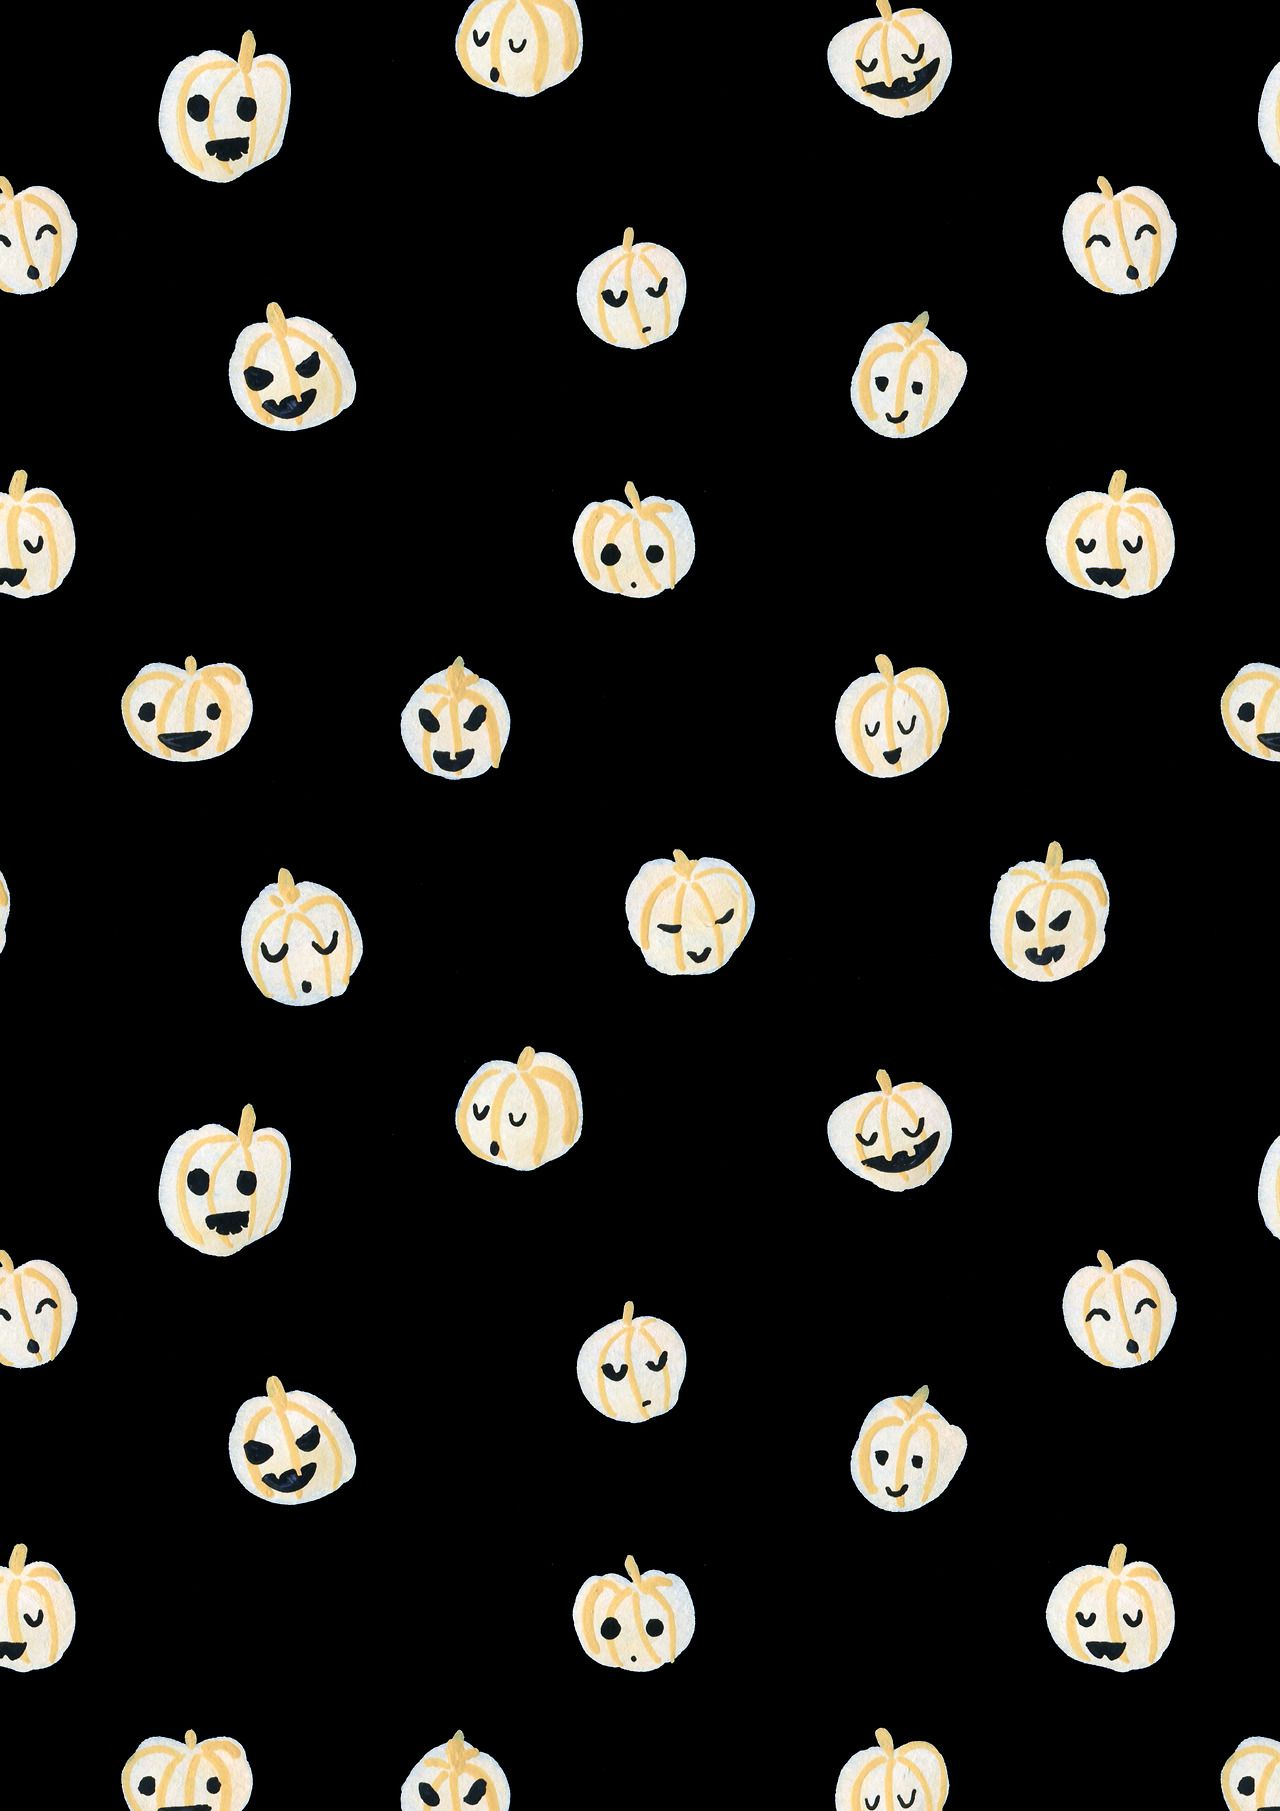 Autumn Fall Halloween Cute Pumpkin Pattern Design October Wallpaper Halloween Wallpaper Iphone Wallpaper Fall